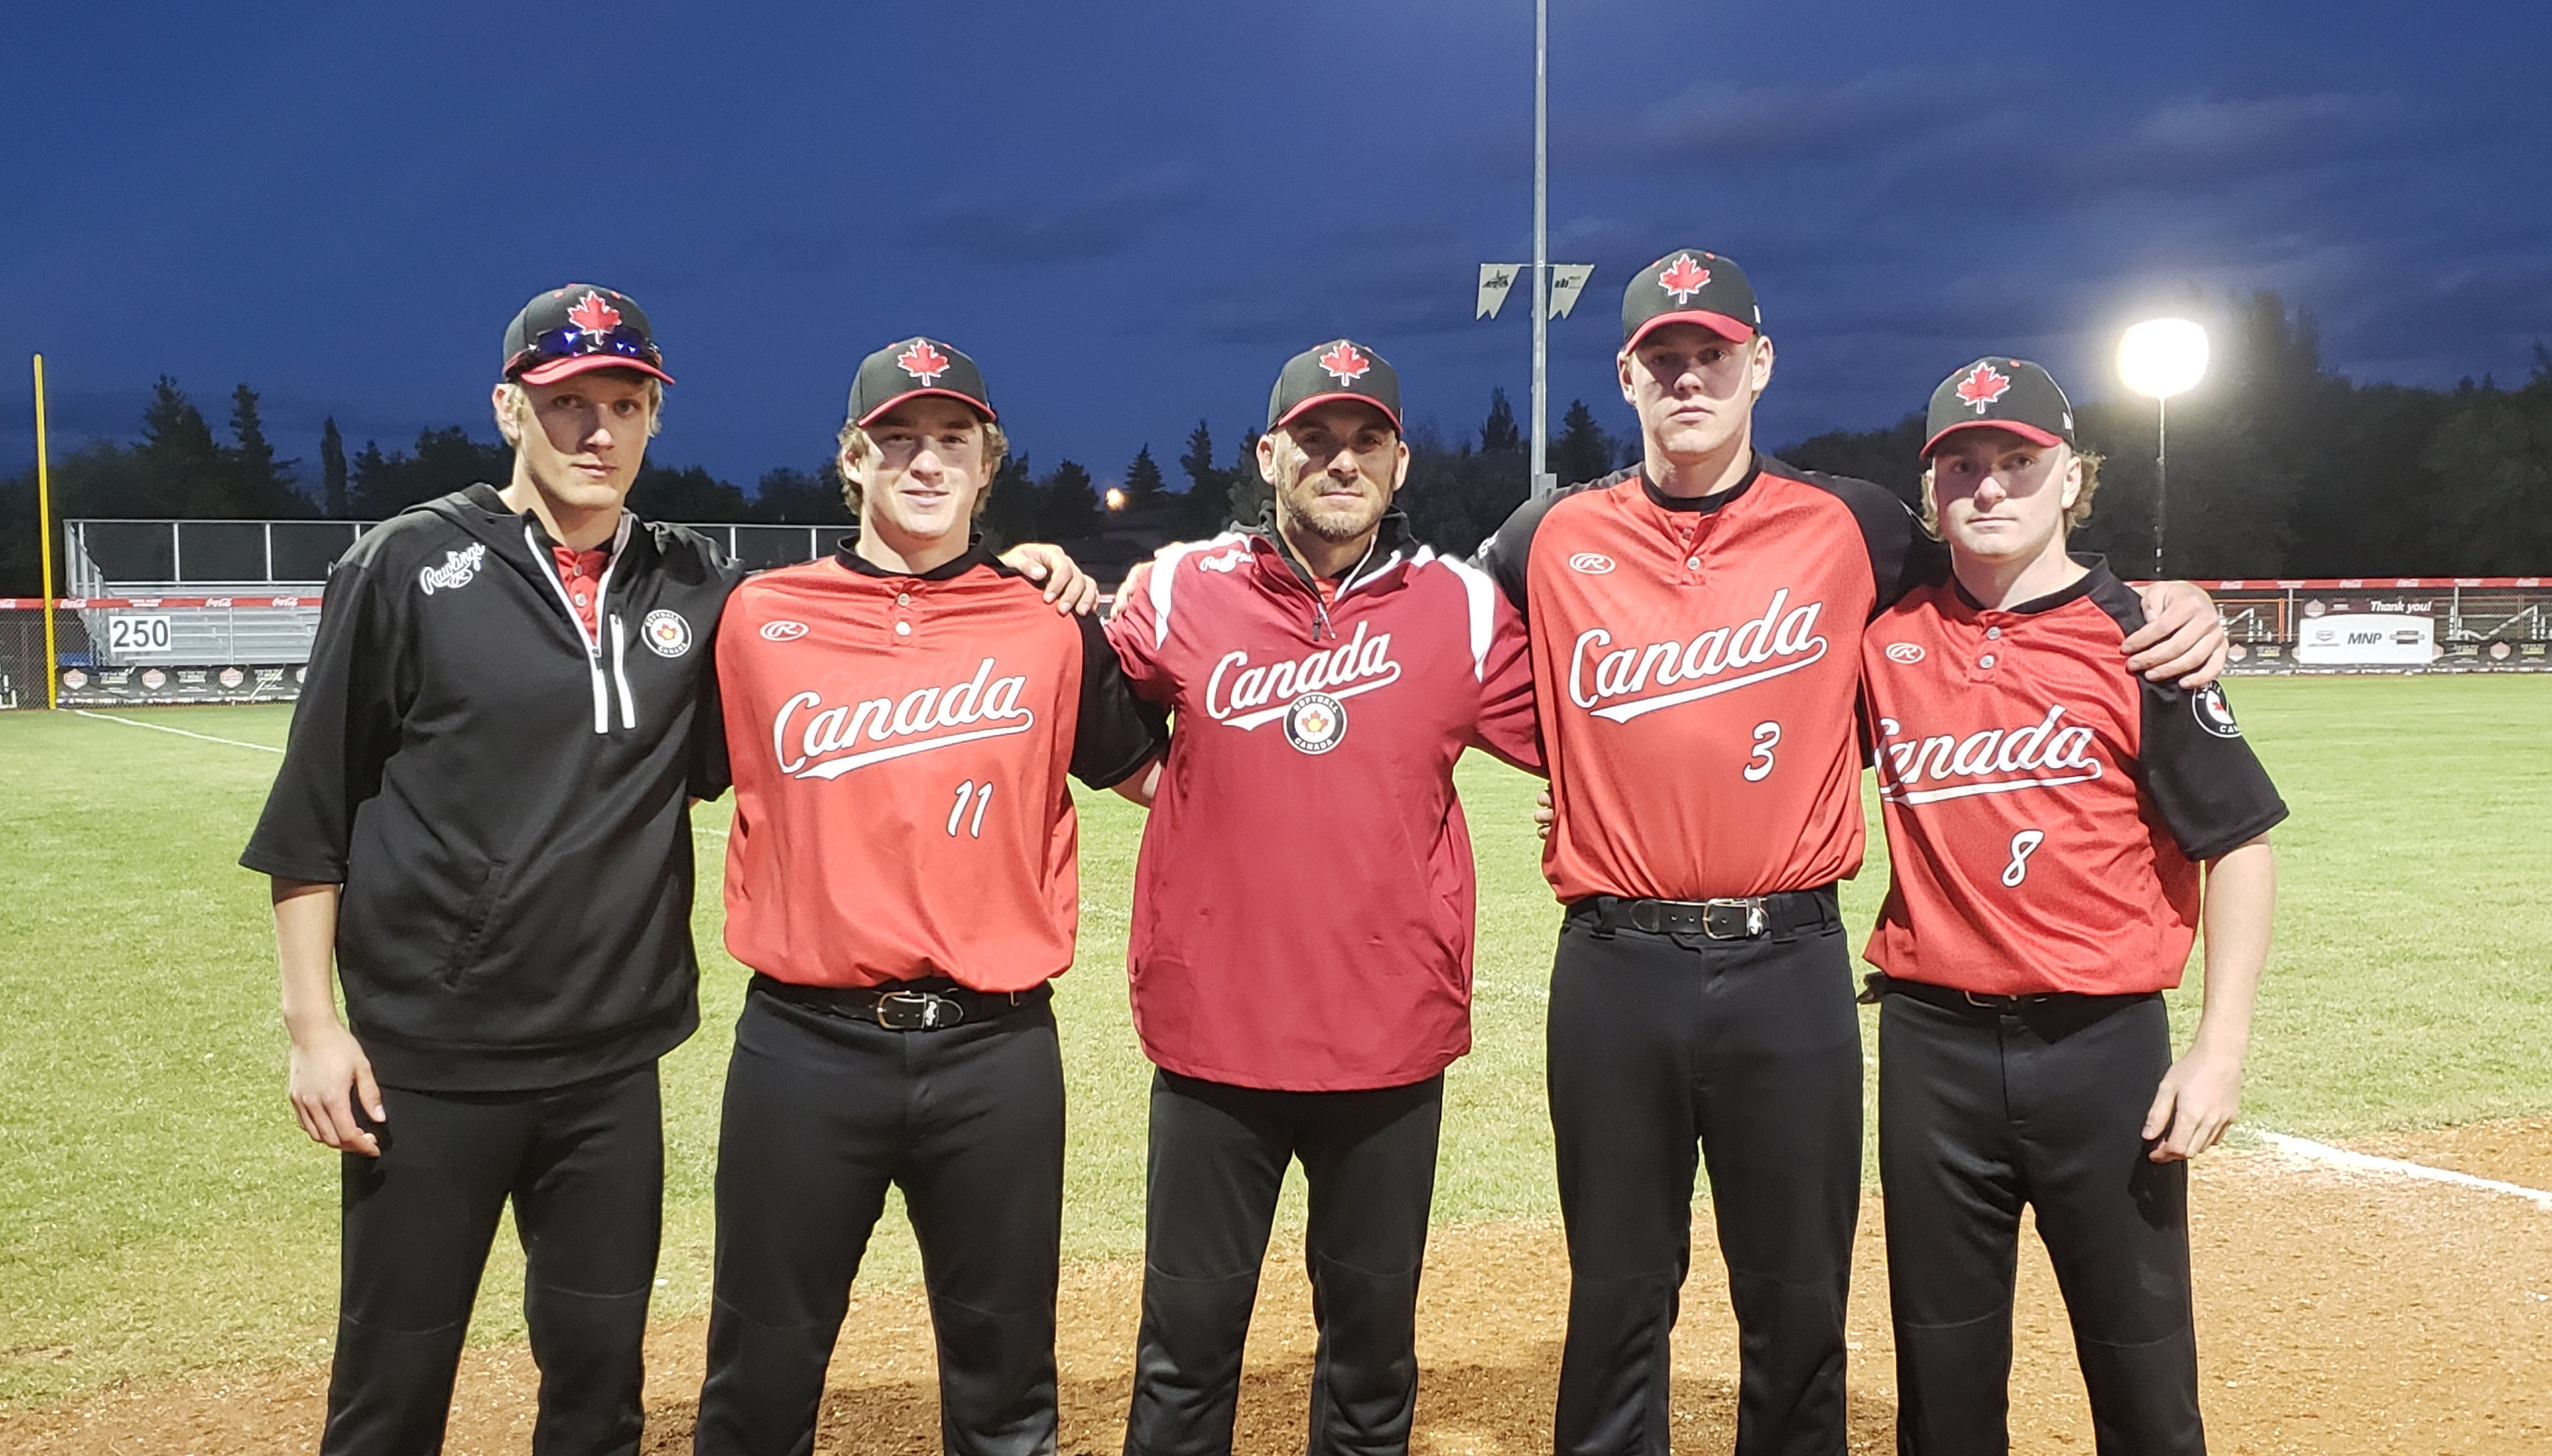 Canada Bows Out Of Jr. Men's Softball Worlds In 5-2 Loss To New Zealand